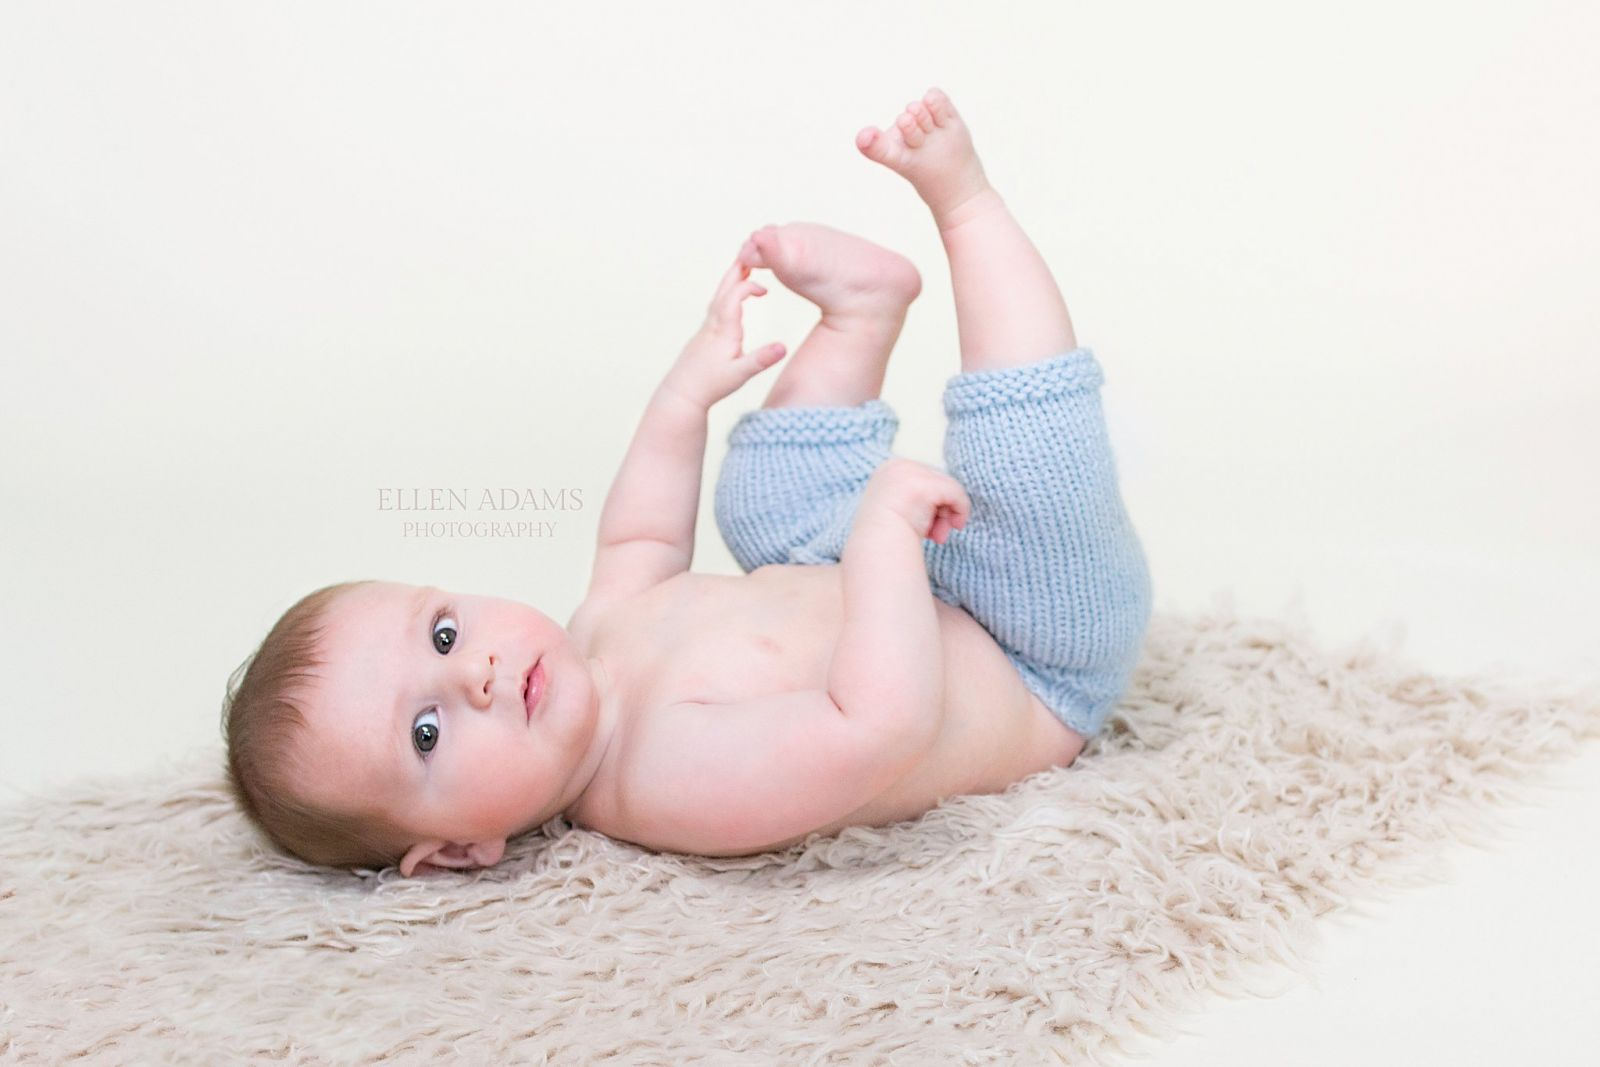 Picture of five month old baby during first milestone session of baby plan by Ellen Adams Photography